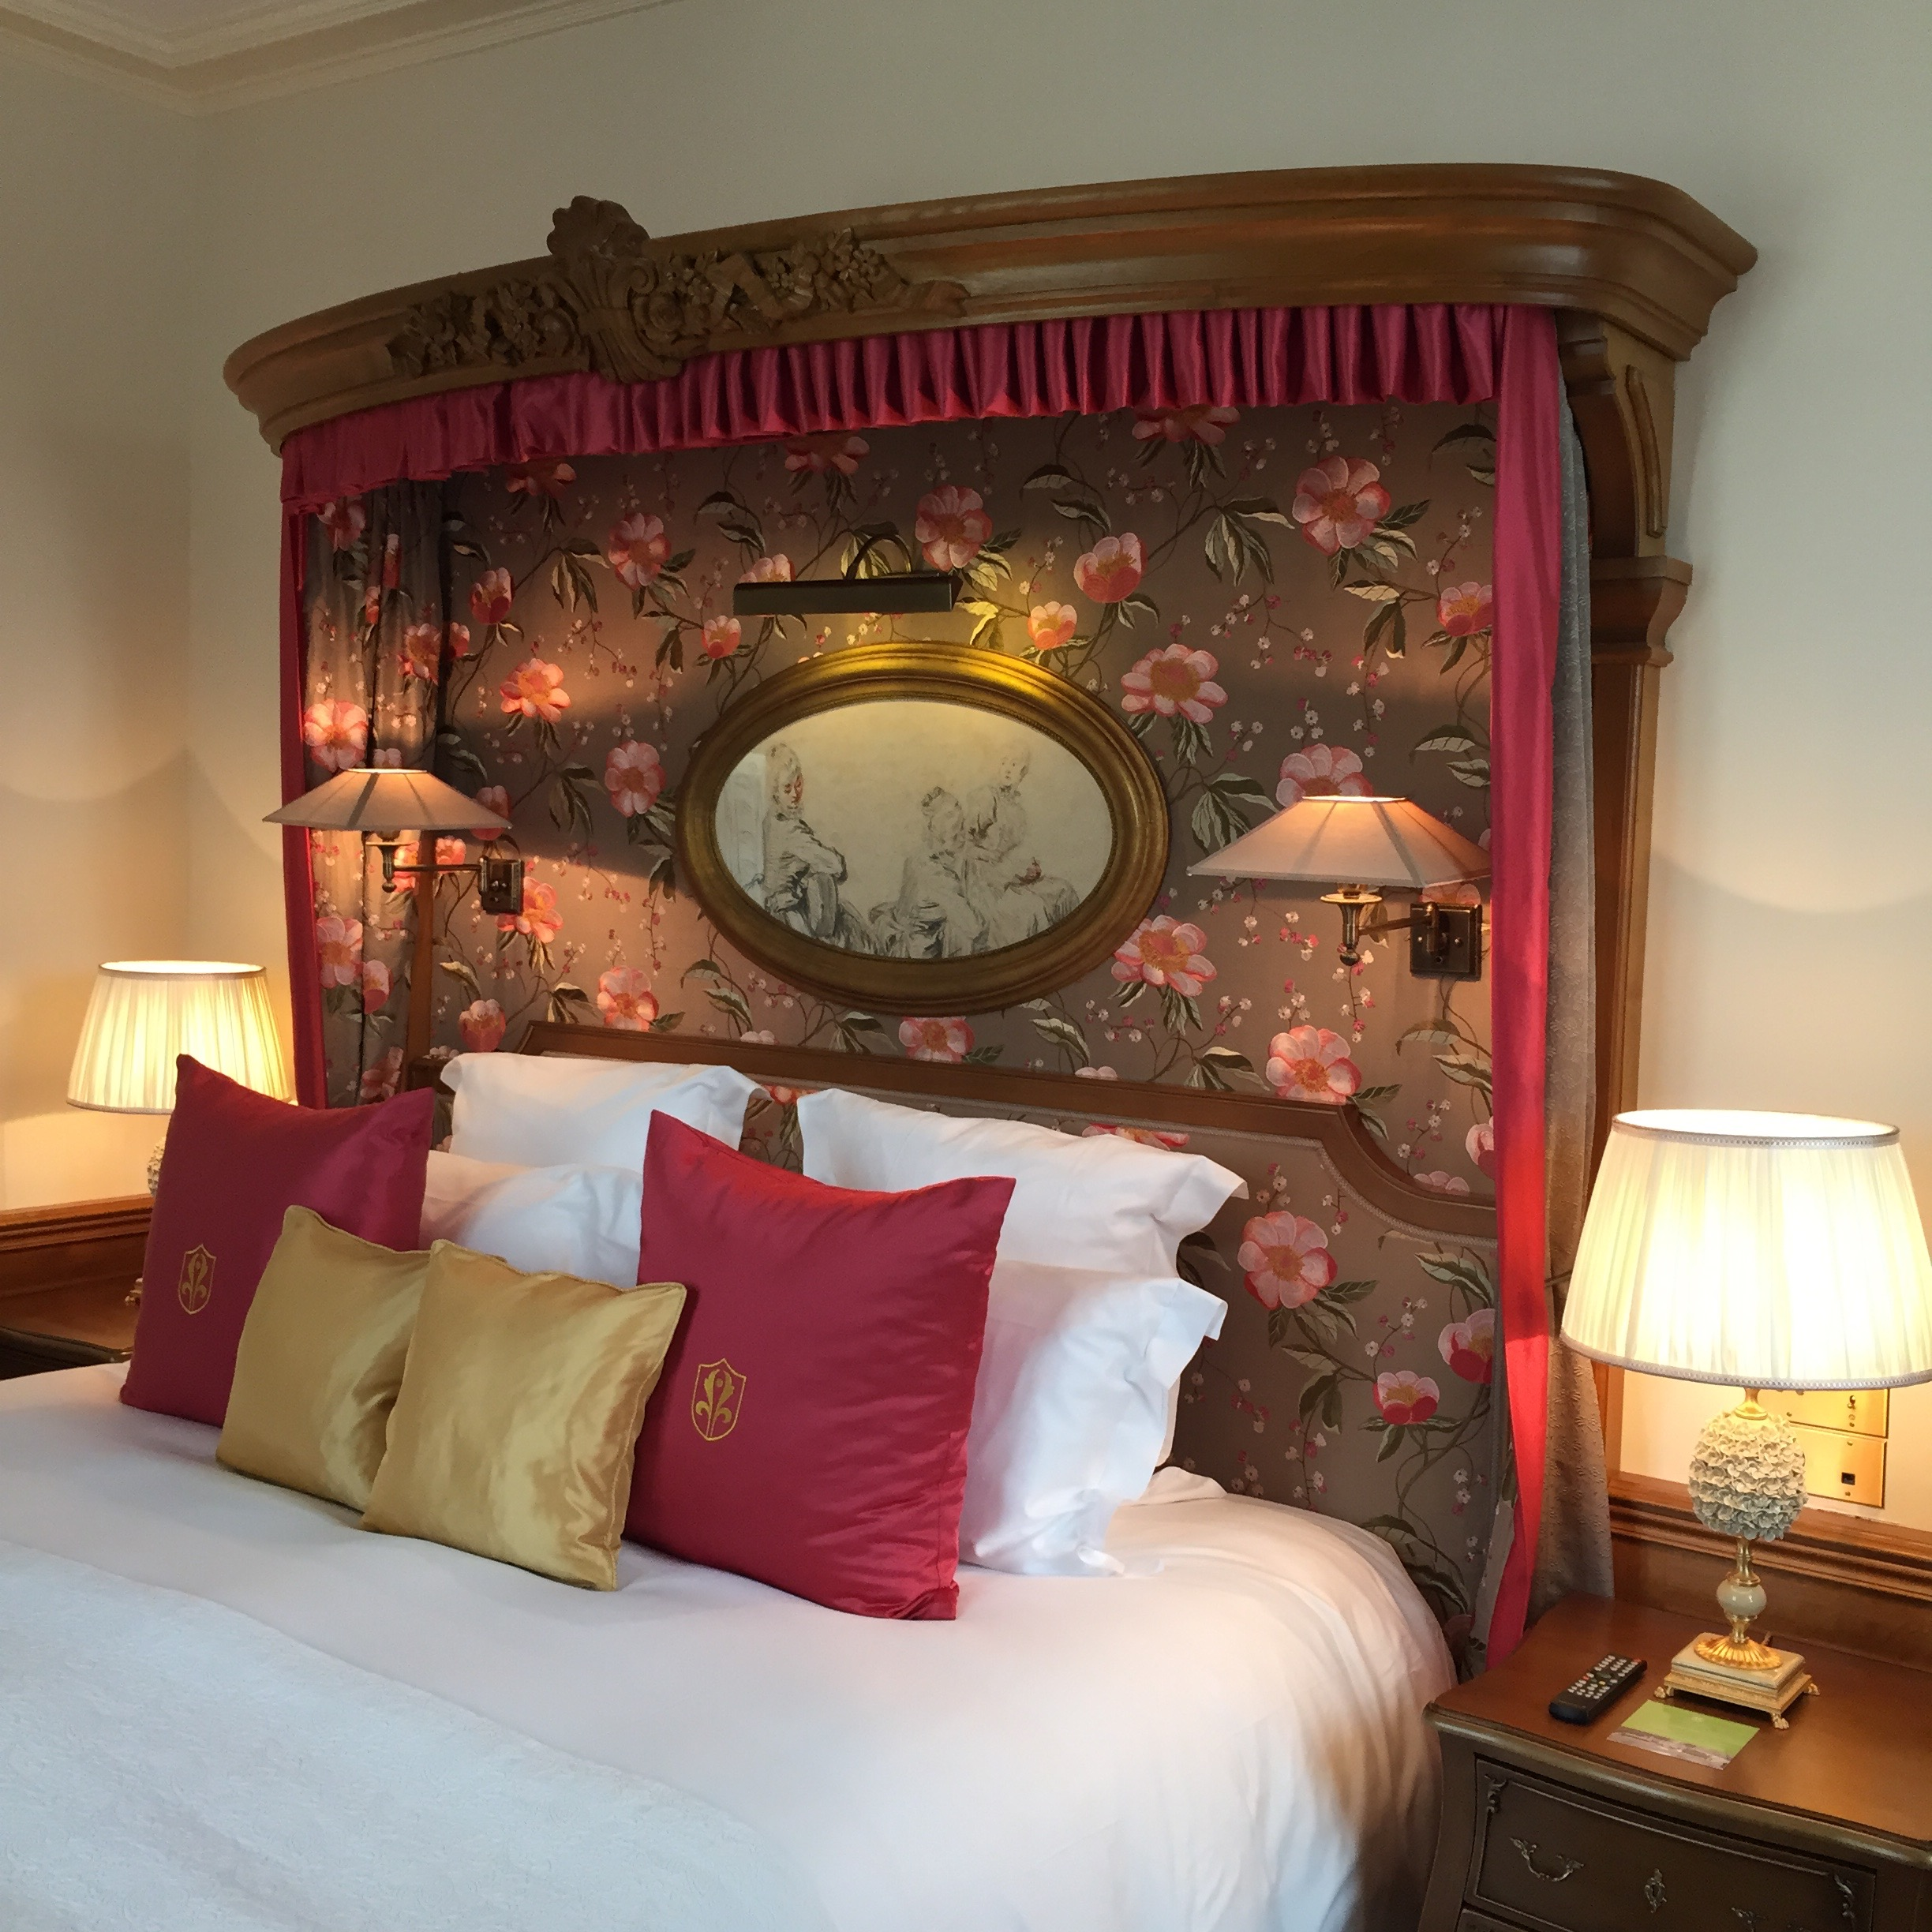 My top tips to make the most of your luxury hotel stay